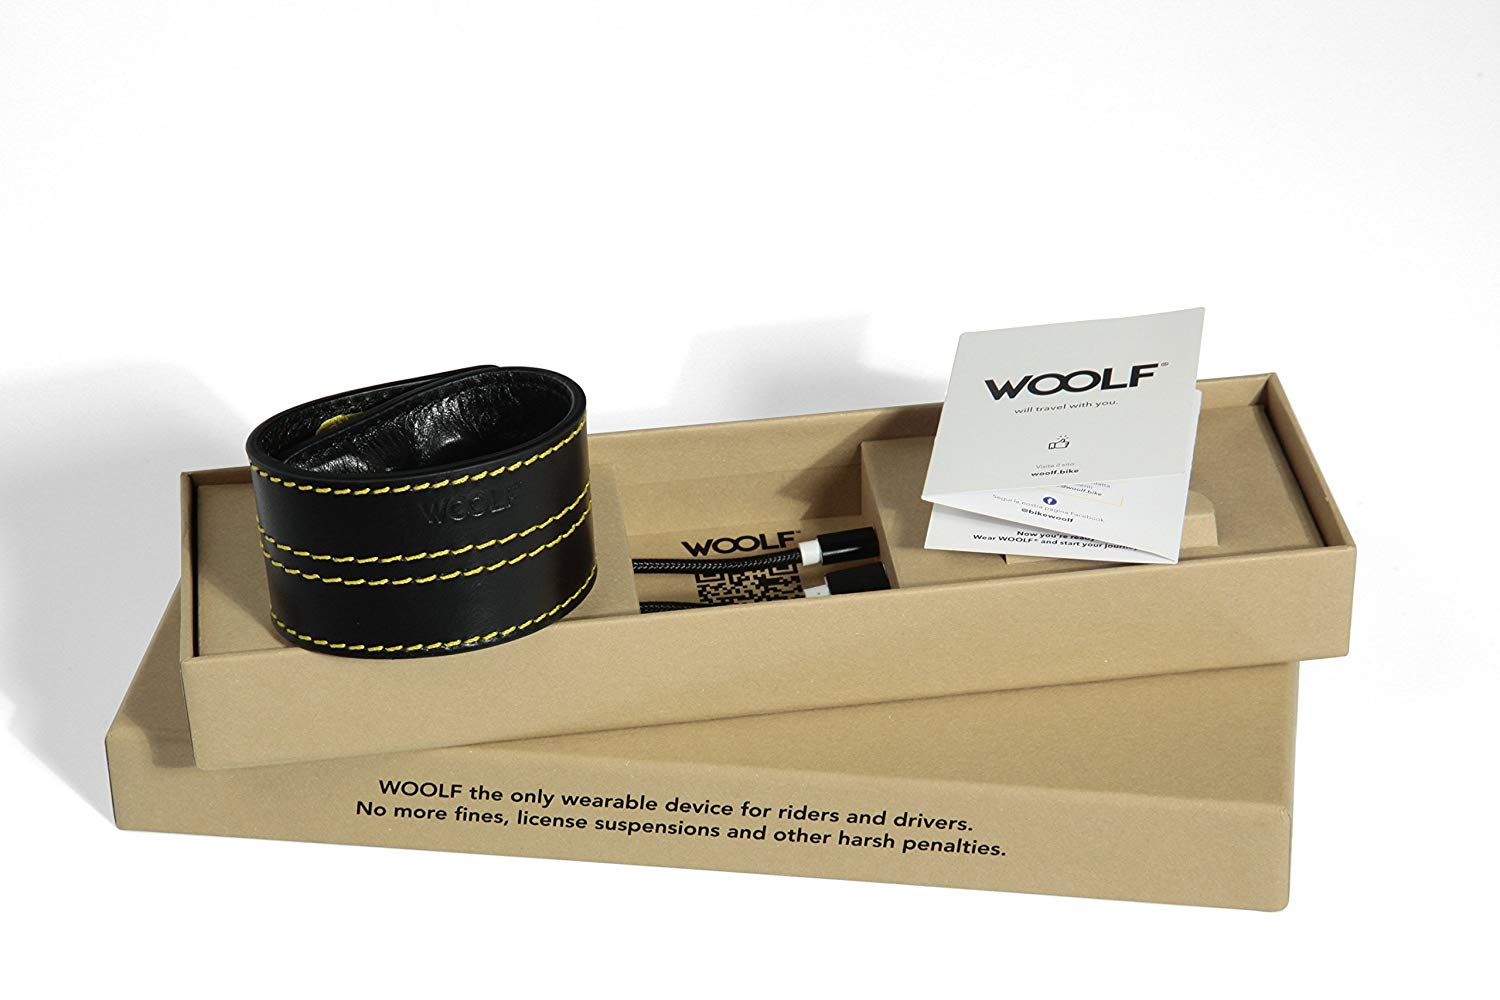 Woolf il bracciale anti autovelox